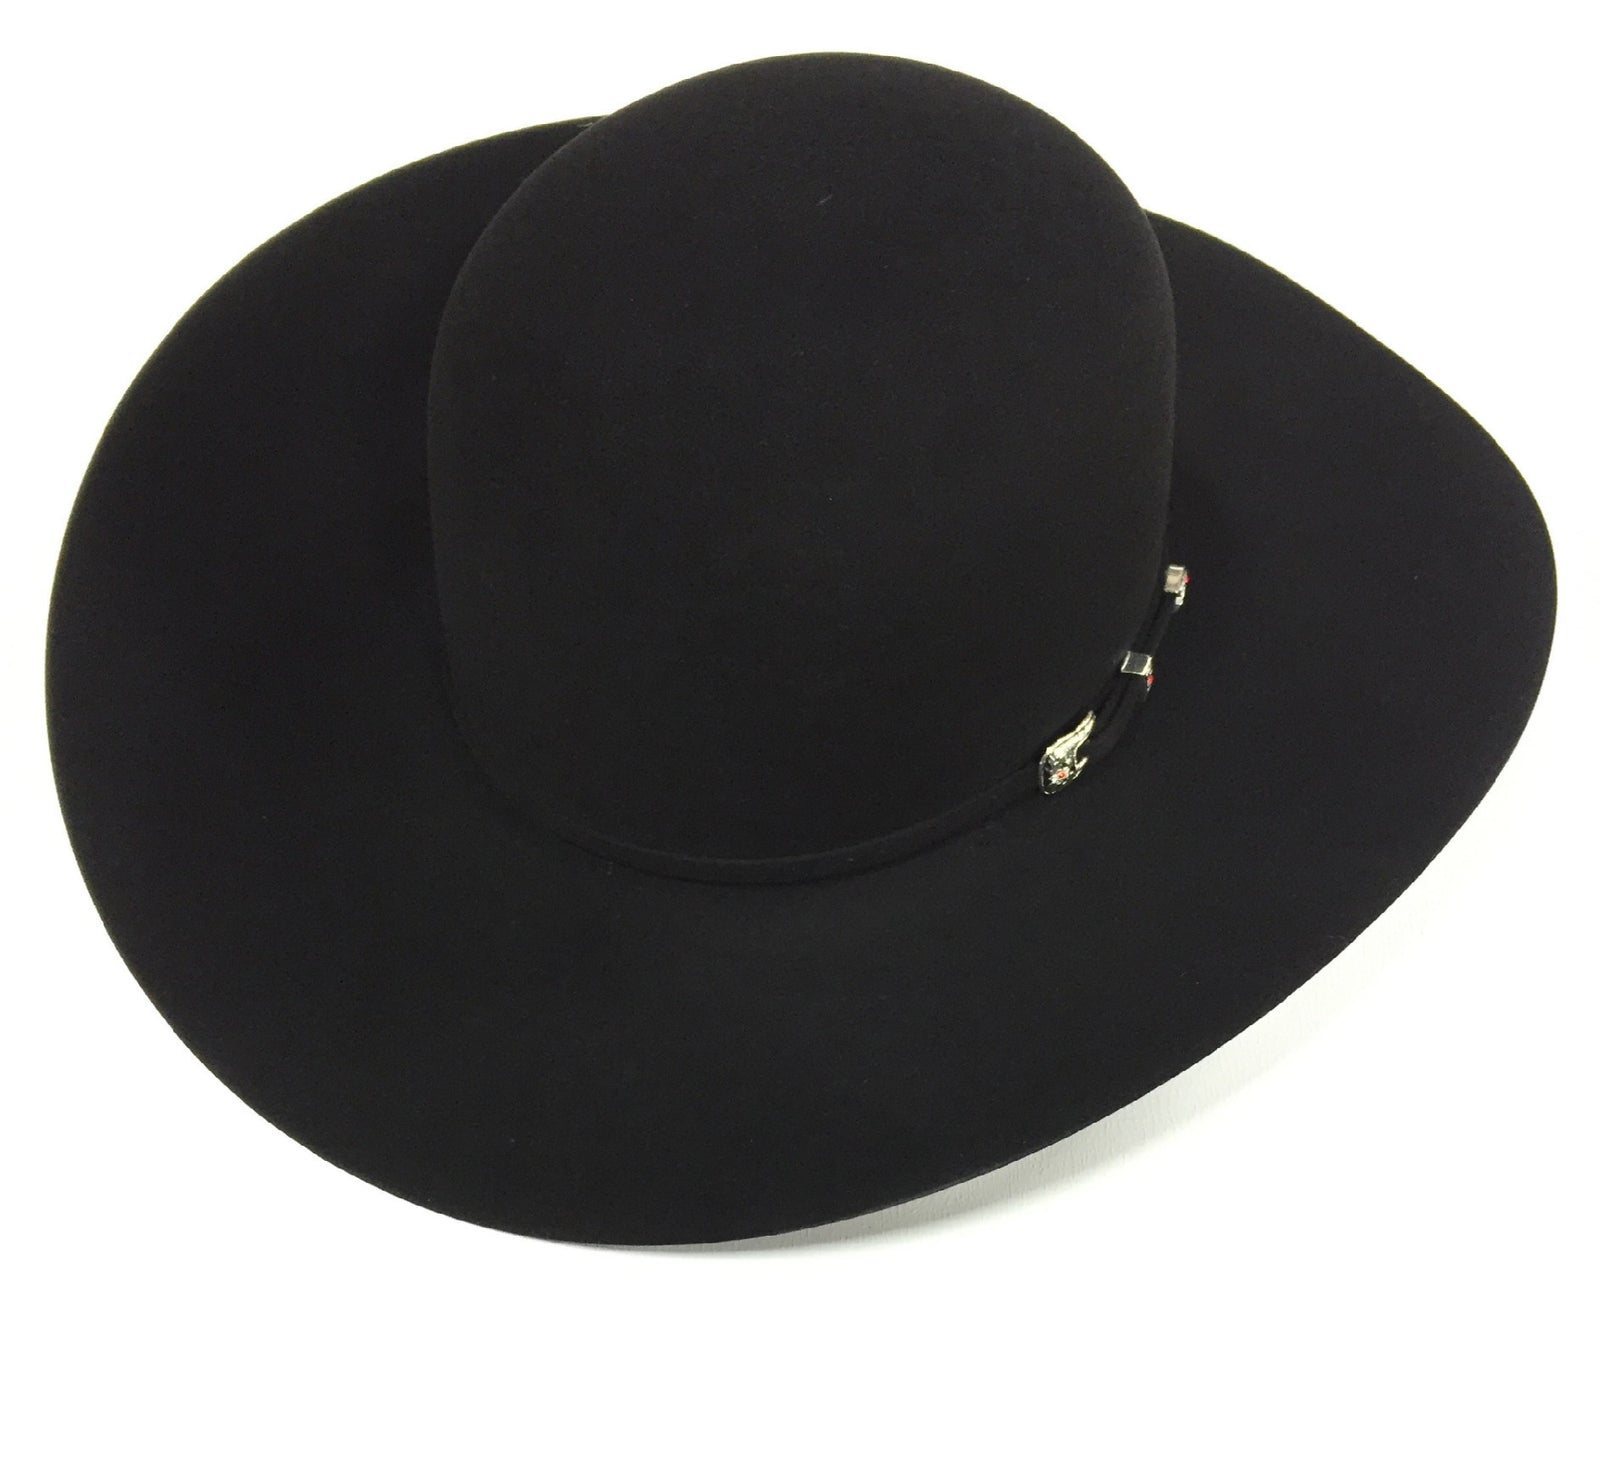 4620528edd24f Black 20X 4 1 4 Brim Felt Hat by American Hat Co.